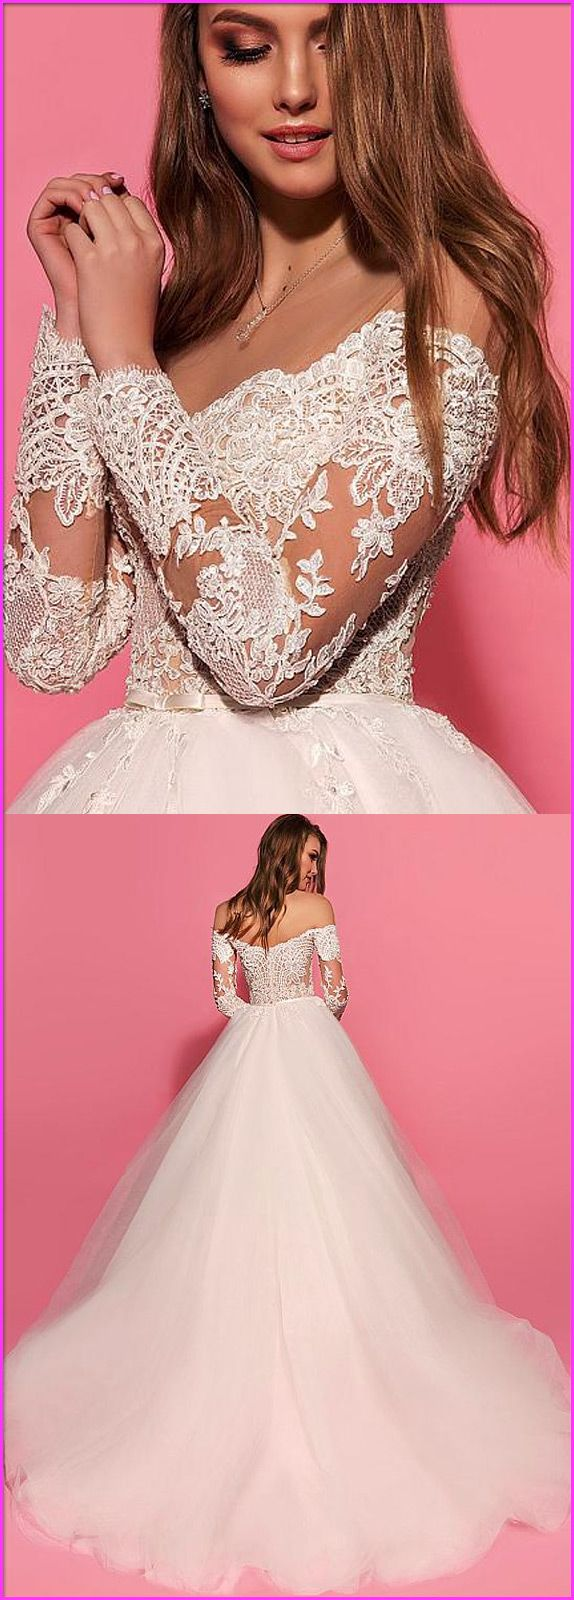 Fantastic Tulle & Satin Bateau Neckline See-through A-Line Wedding Dresses With Beaded Lace Appliques